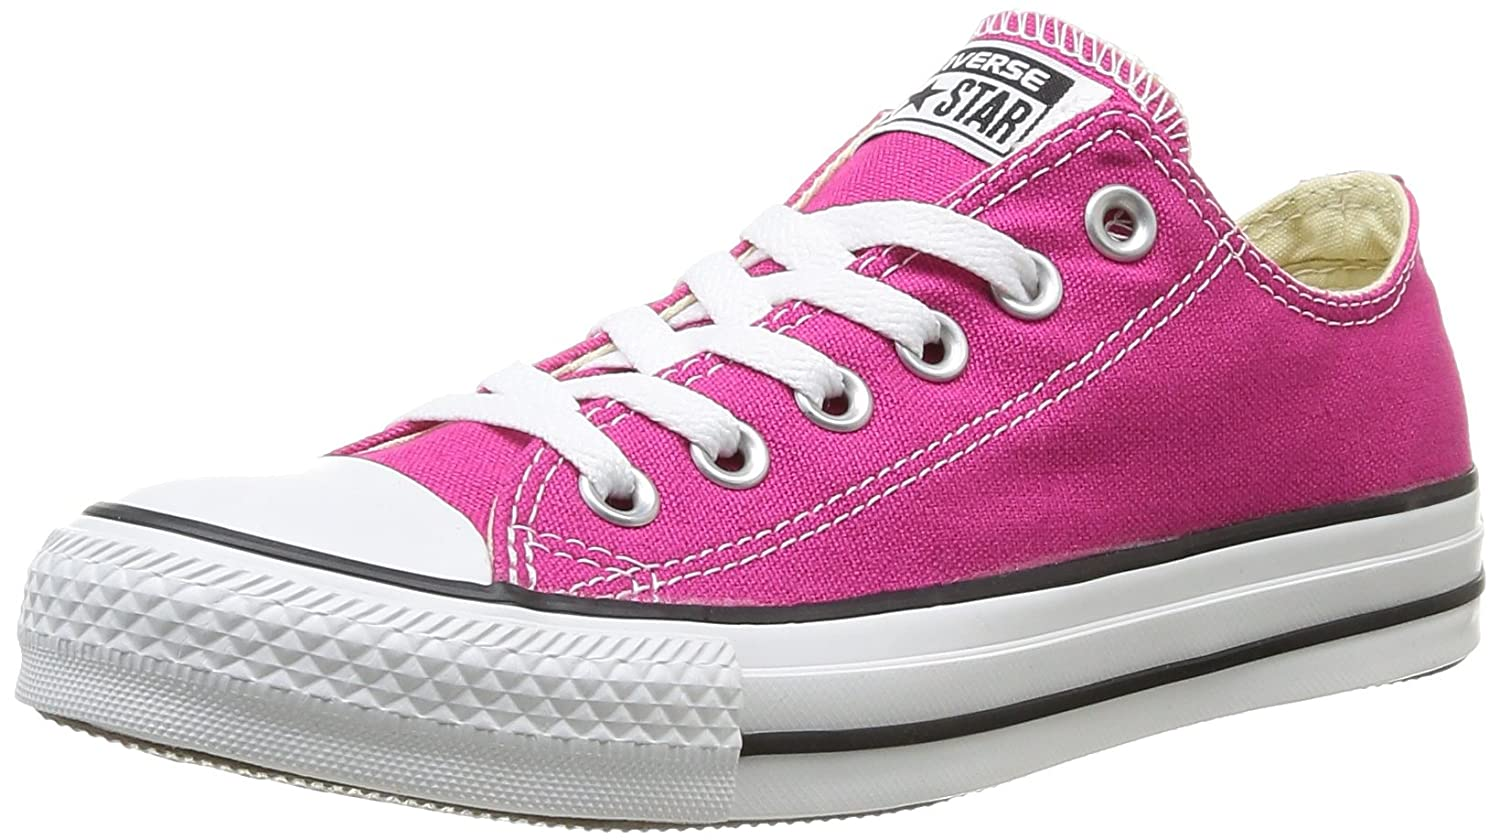 Converse Star Rose Chuck Taylor All B000W069PS Star Core, Baskets Mixte Adulte Rose cd0e545 - boatplans.space